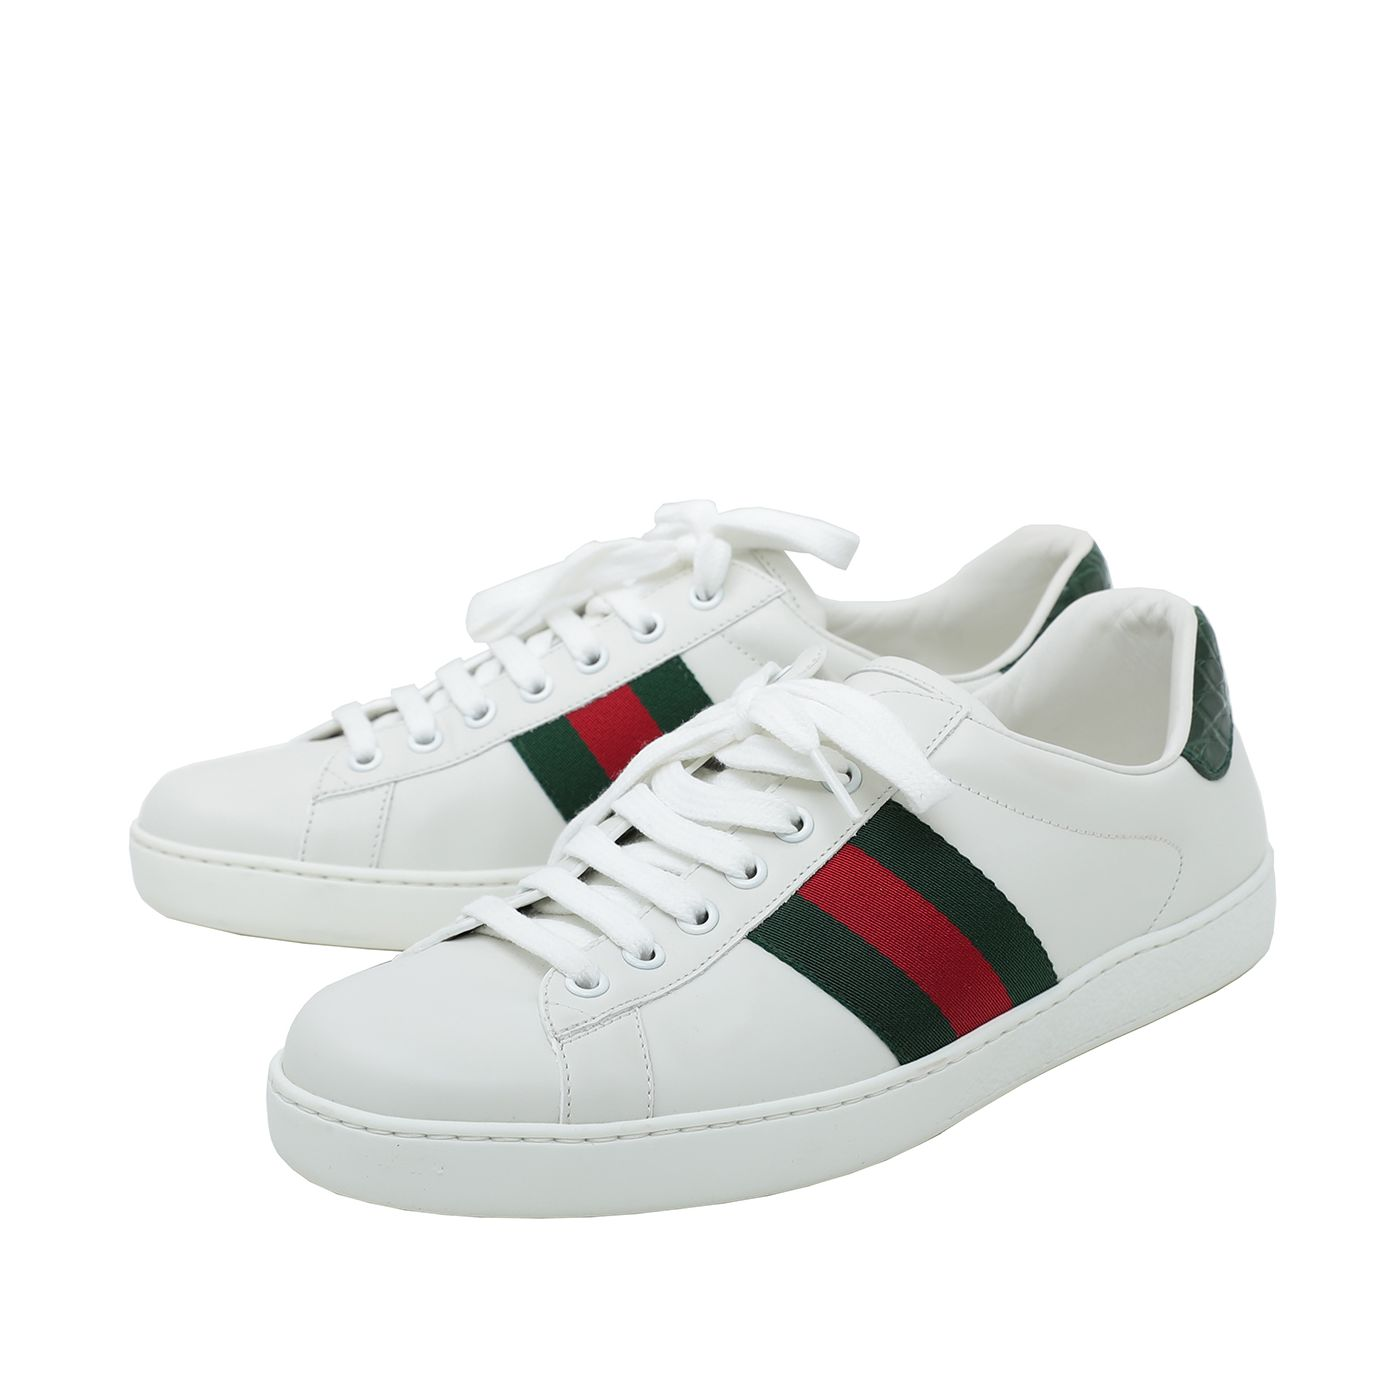 Gucci White Men's Ace Sneaker